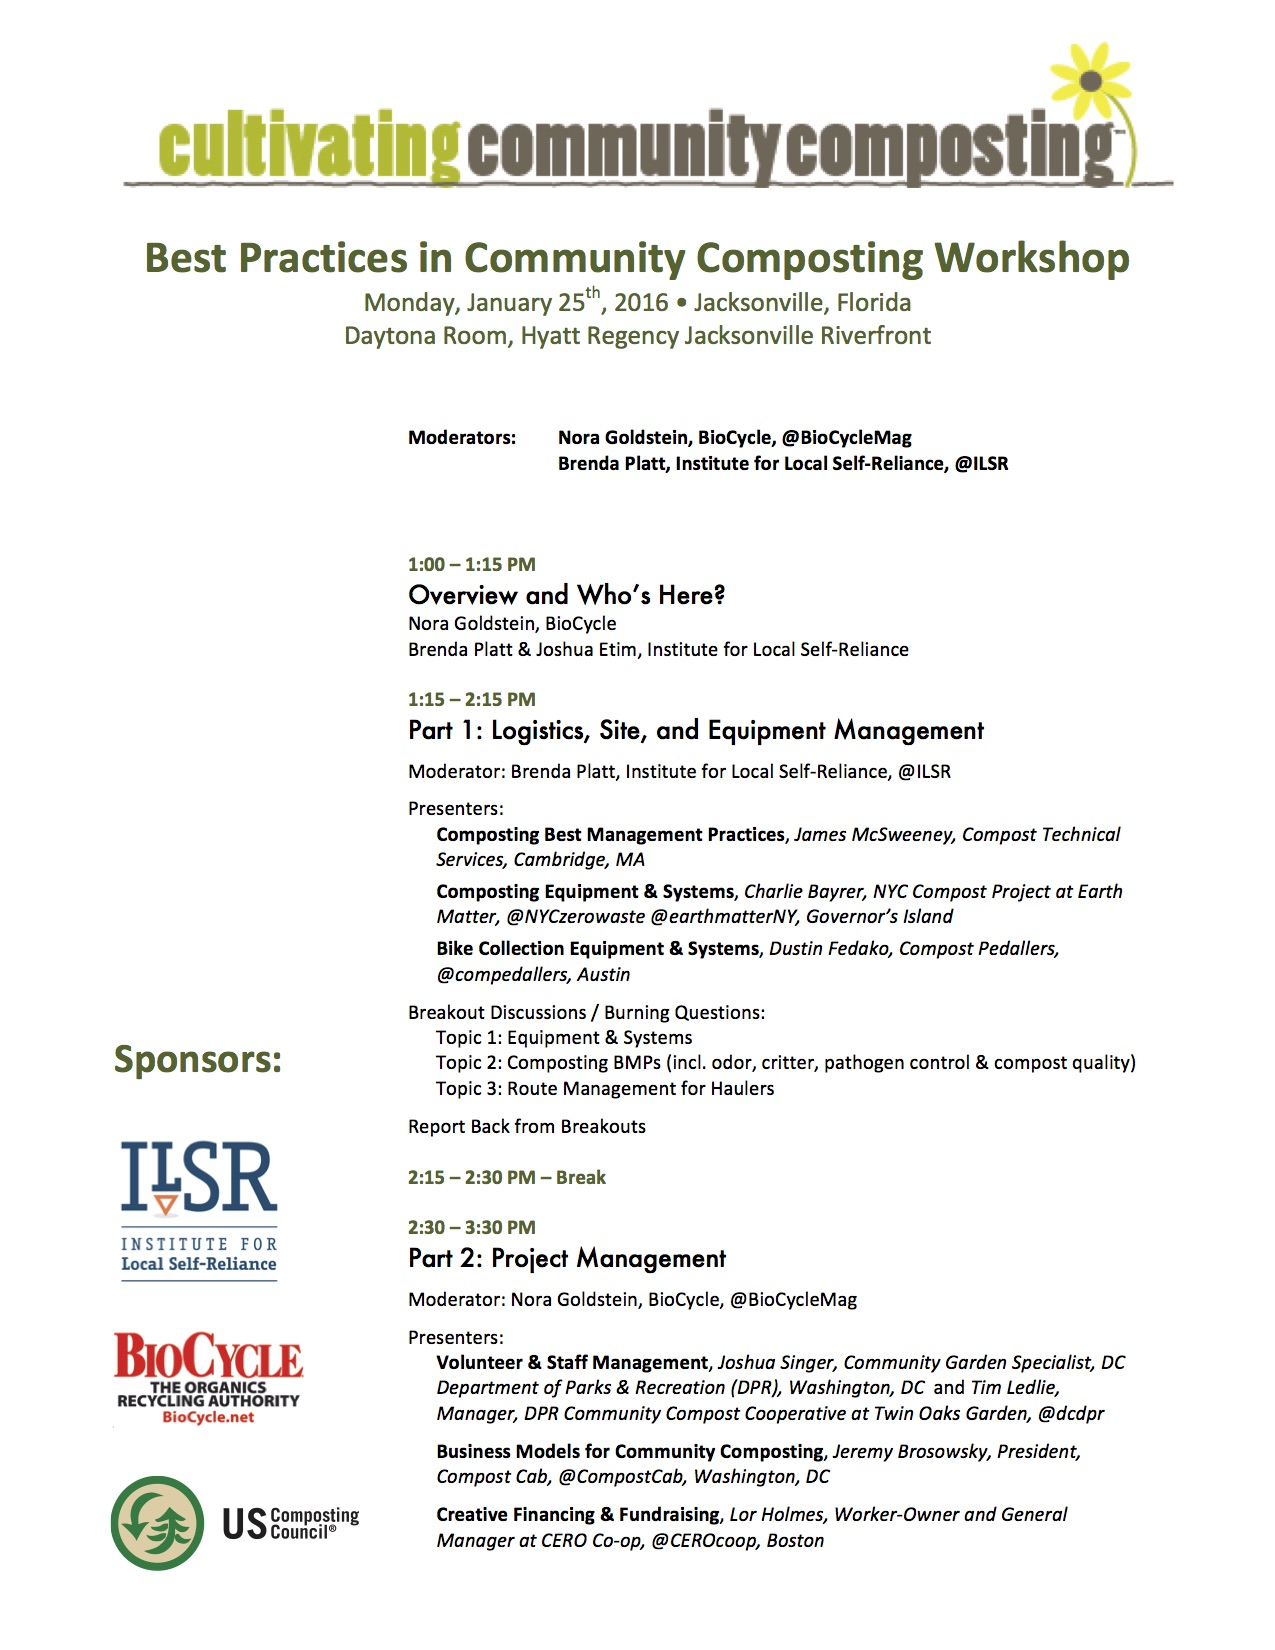 Best Practices in Community Composting agenda 01-24-16 version (1)